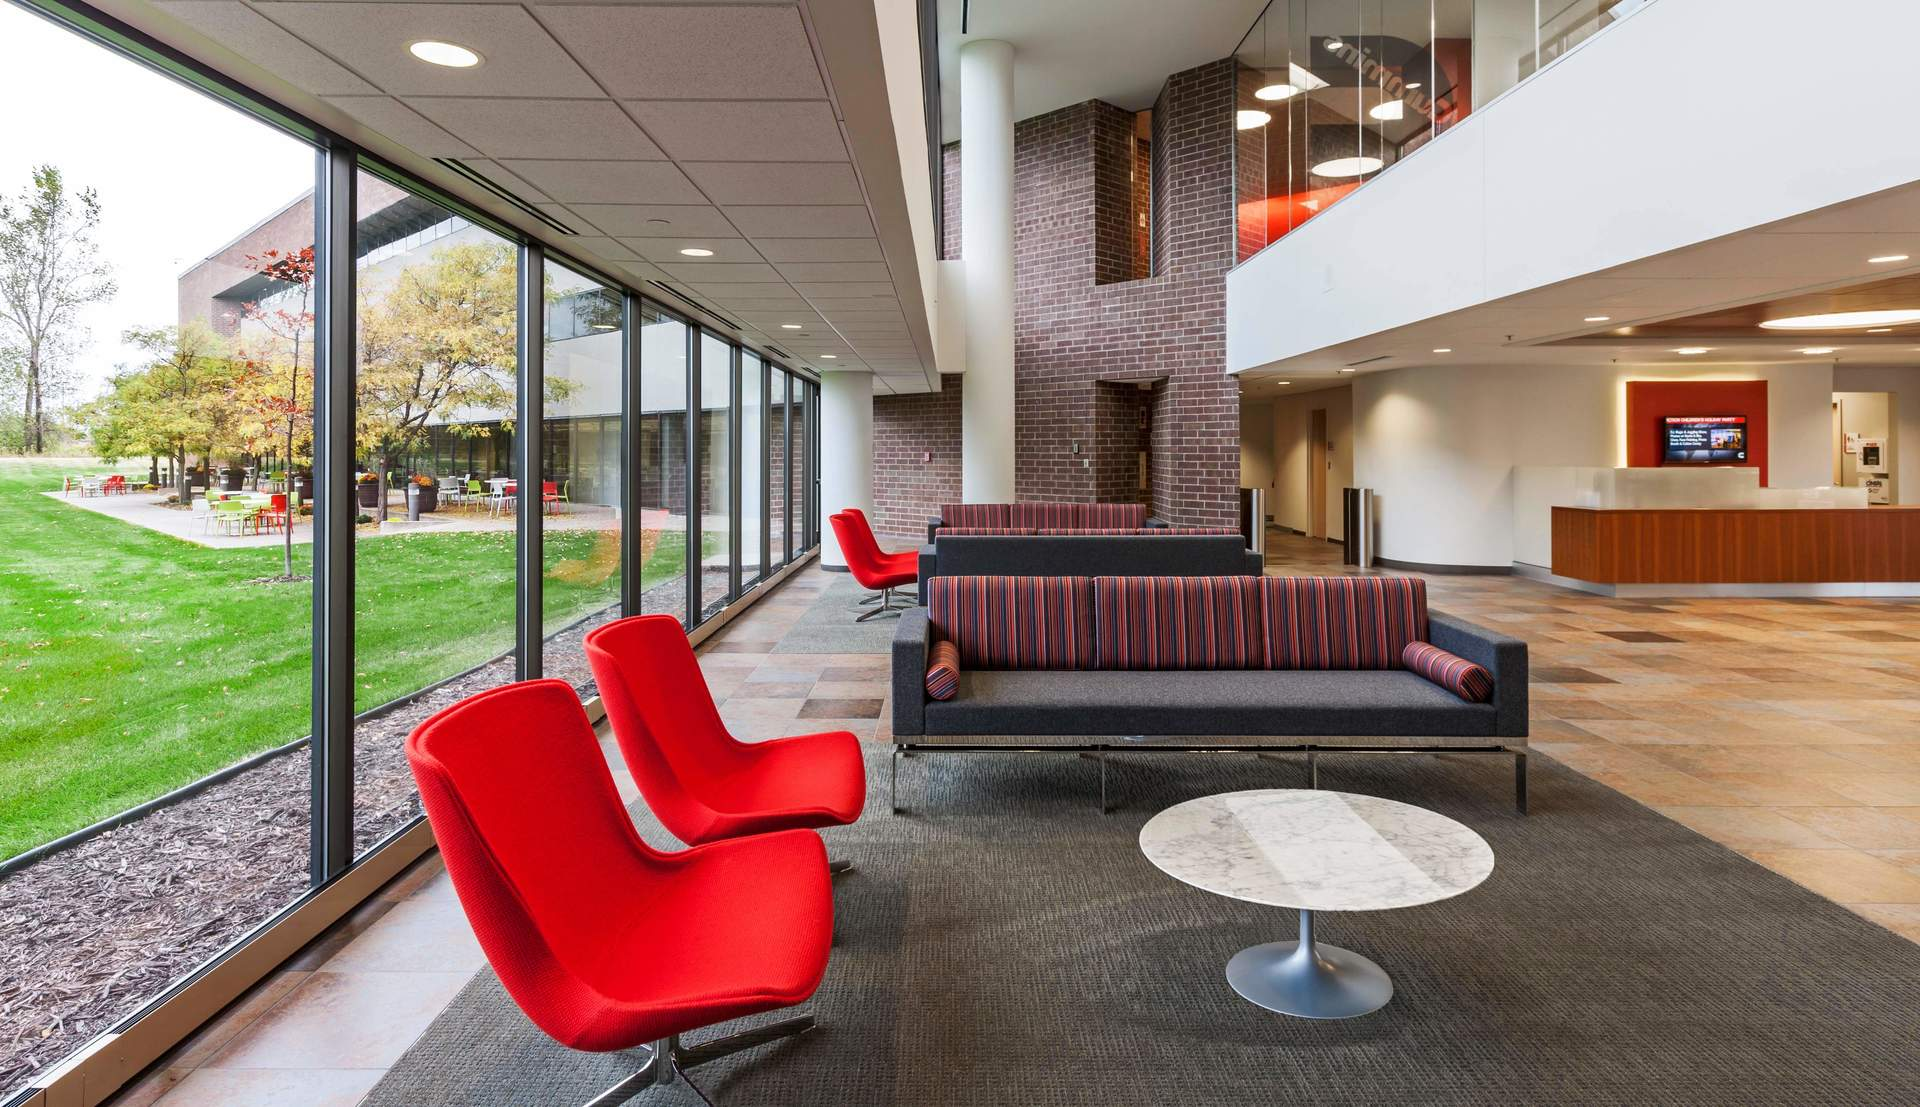 The large lobby and reception area at the CPG Corporate Office in Shoreview, Minnesota, by HCM Architects.